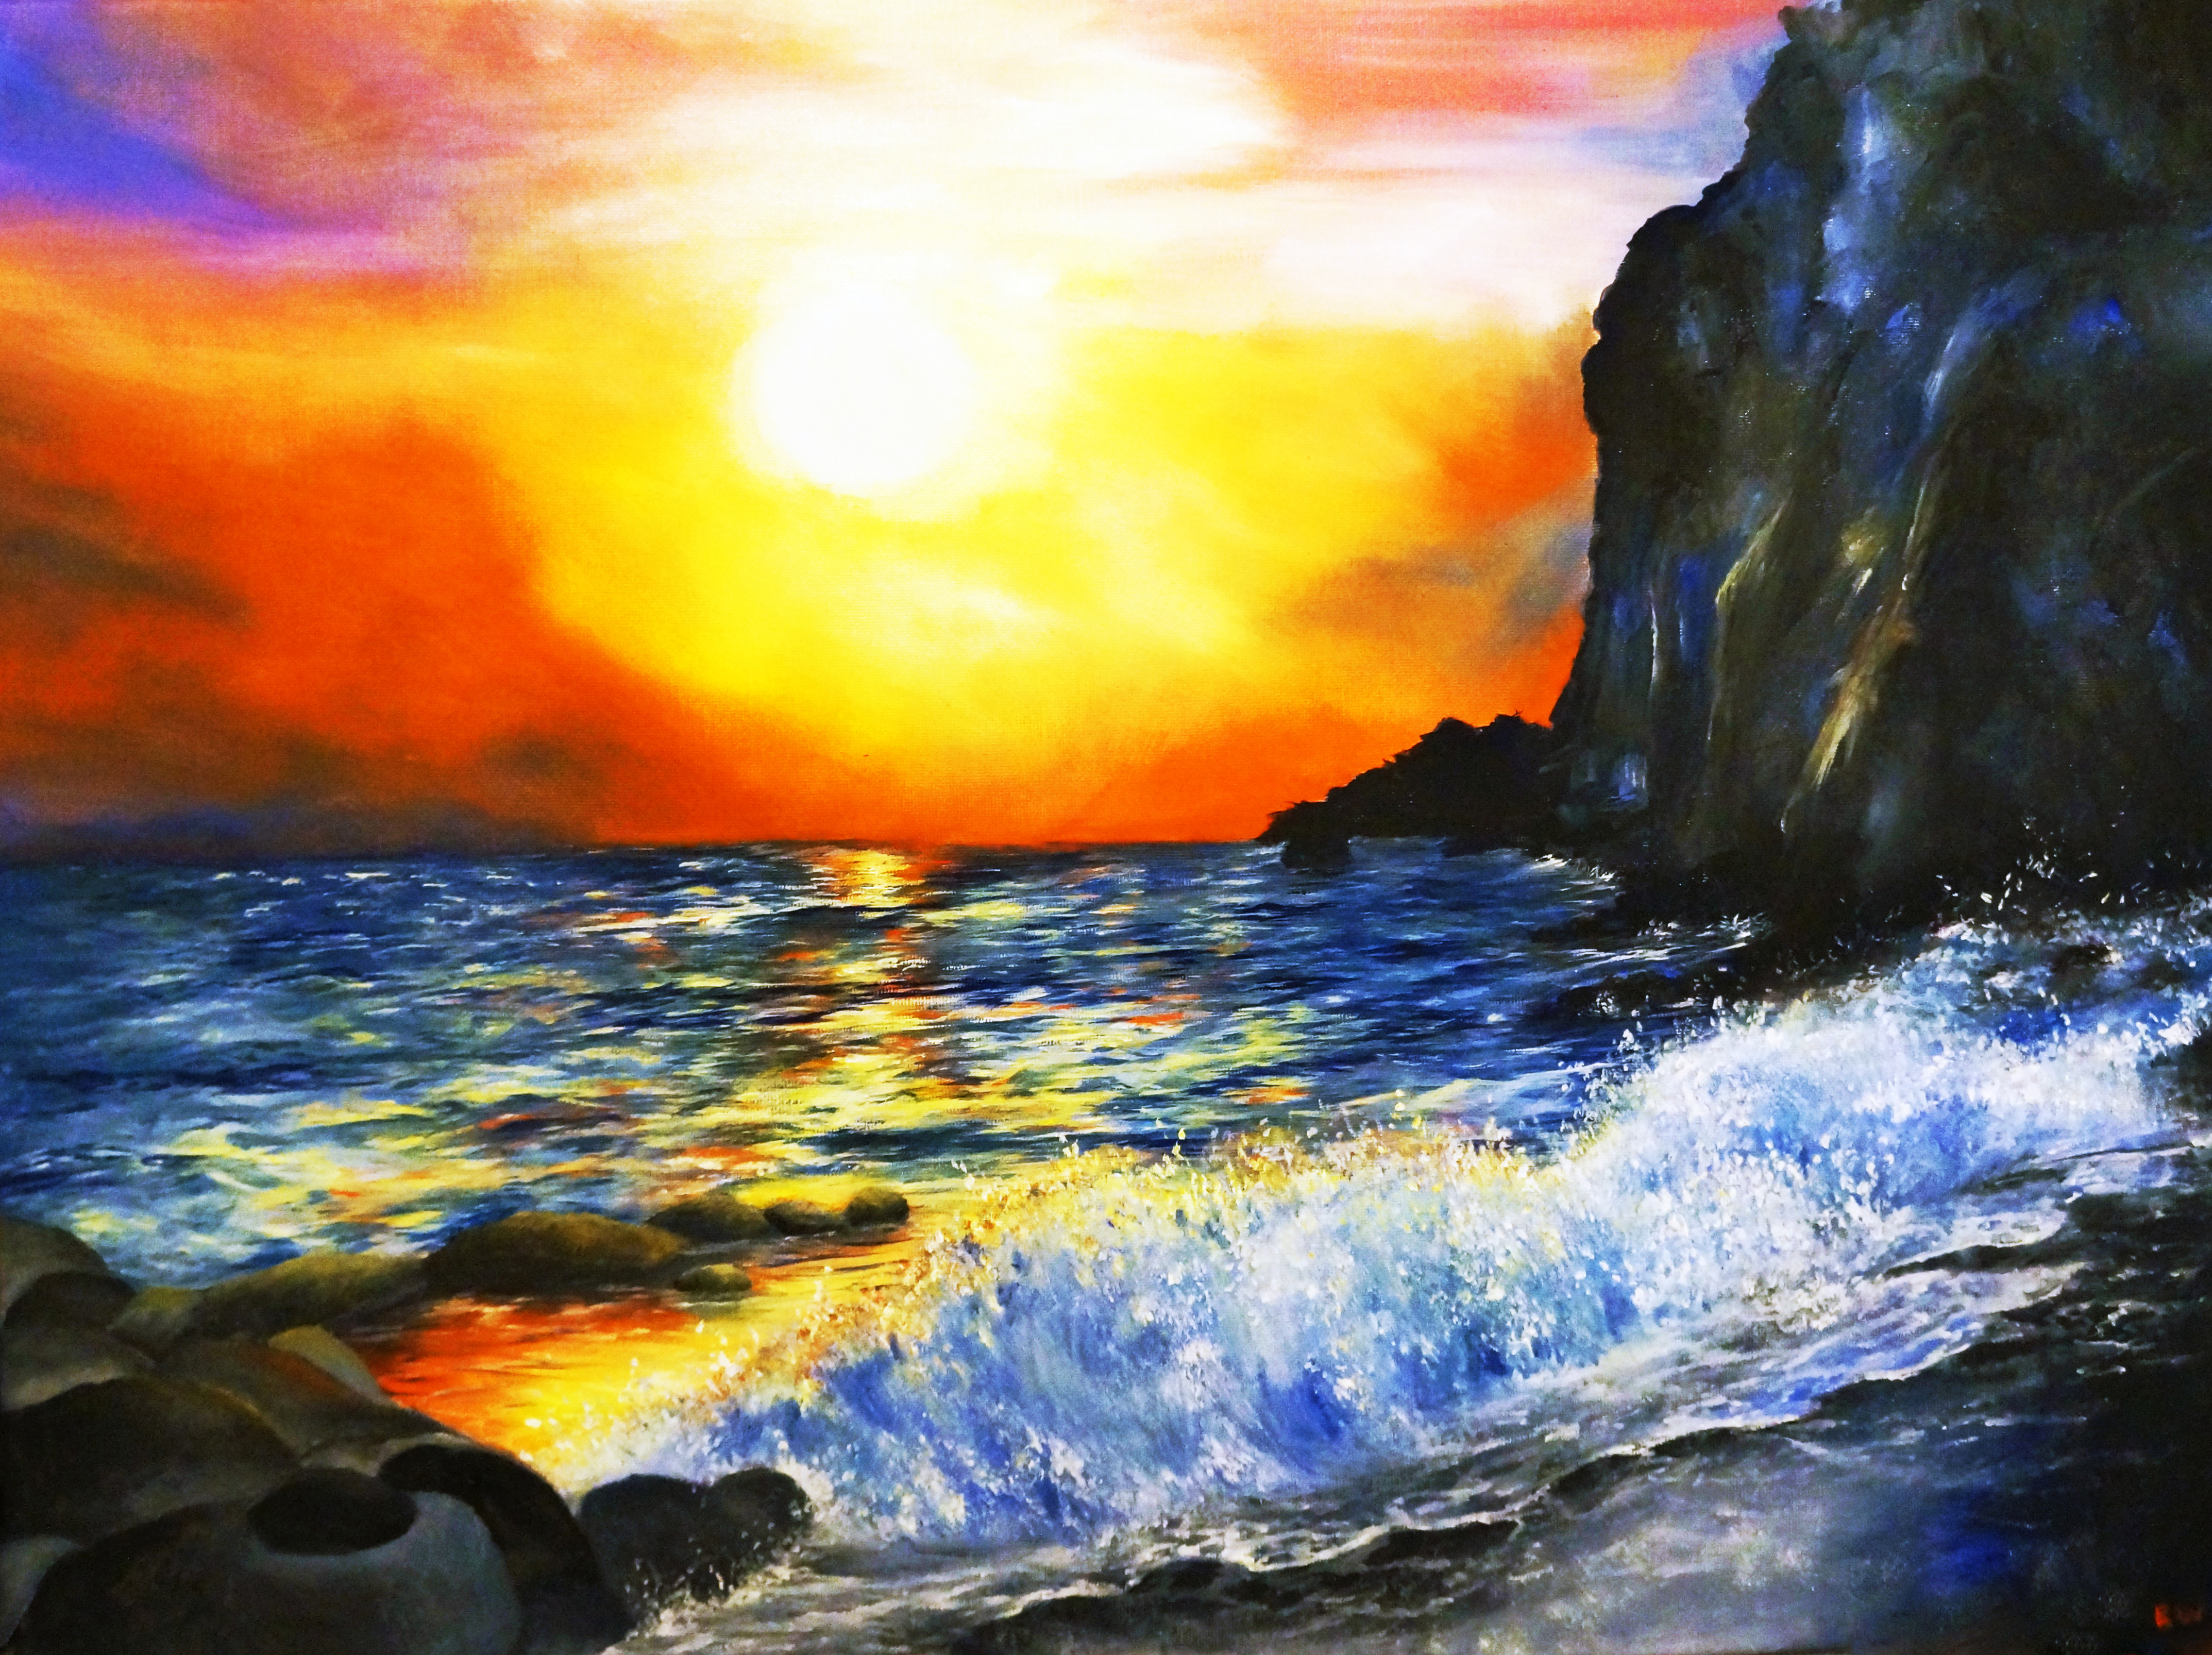 oil painting, sunset painting, sunset, ocean, waves, beach painting, paradise, tropical, peace